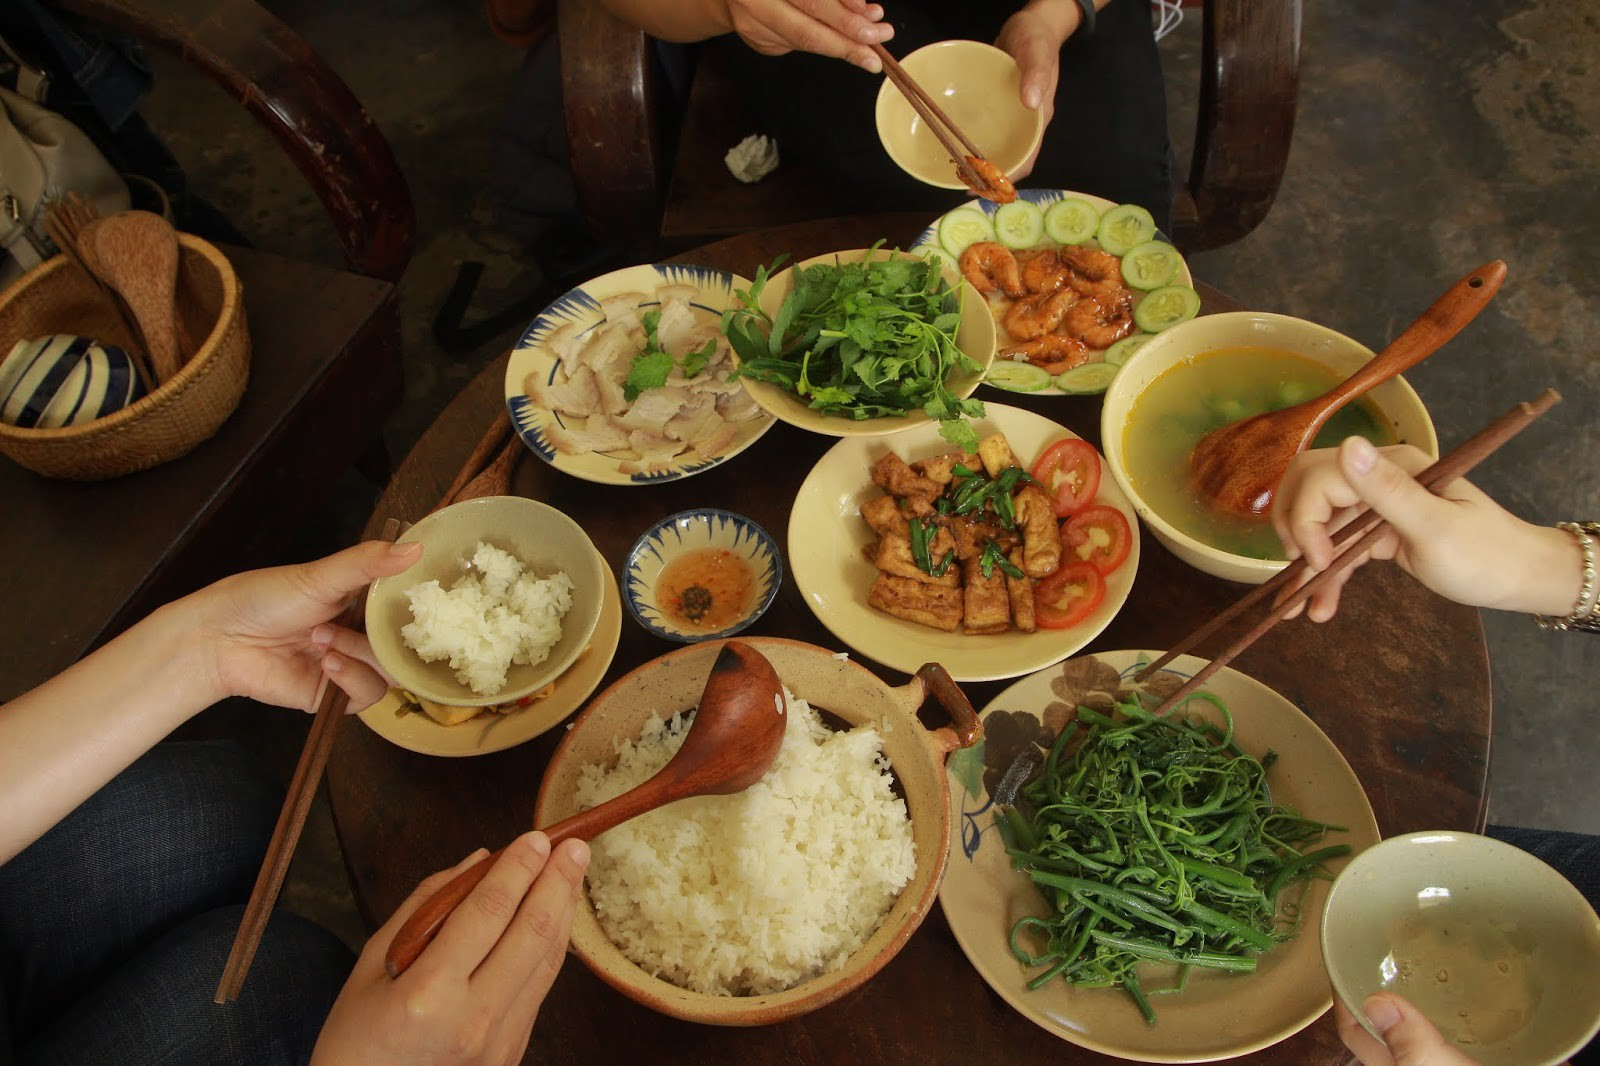 Vietnamese Eating Habits